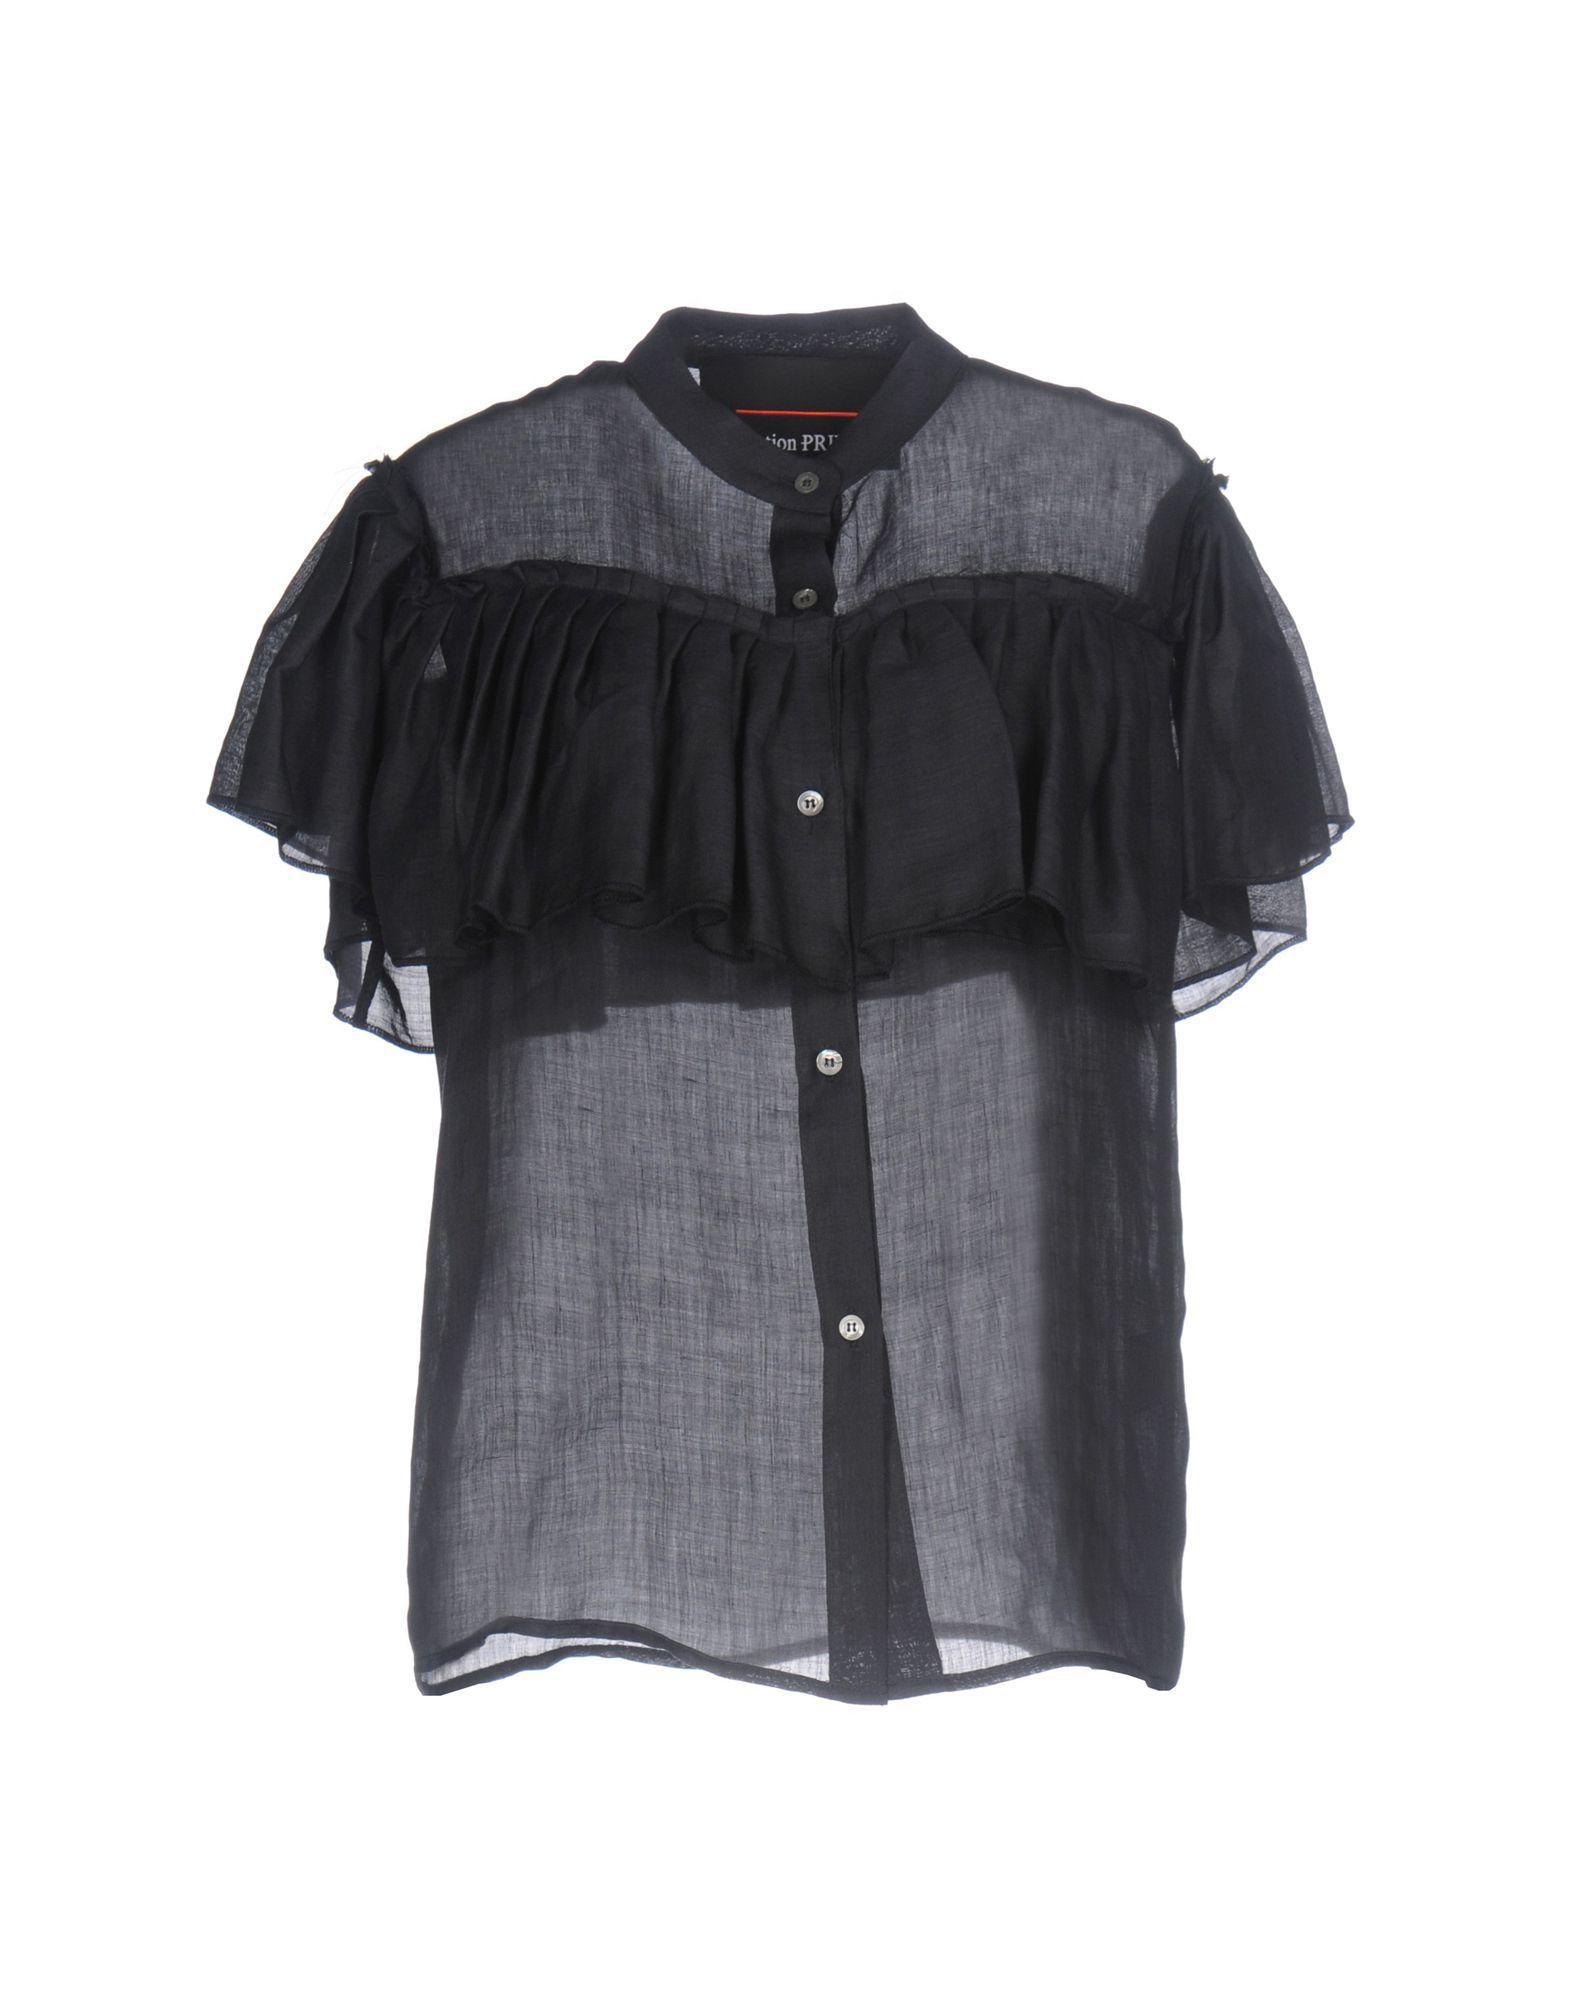 SHIRTS - Shirts Collection Priv Clearance Genuine sZYHw